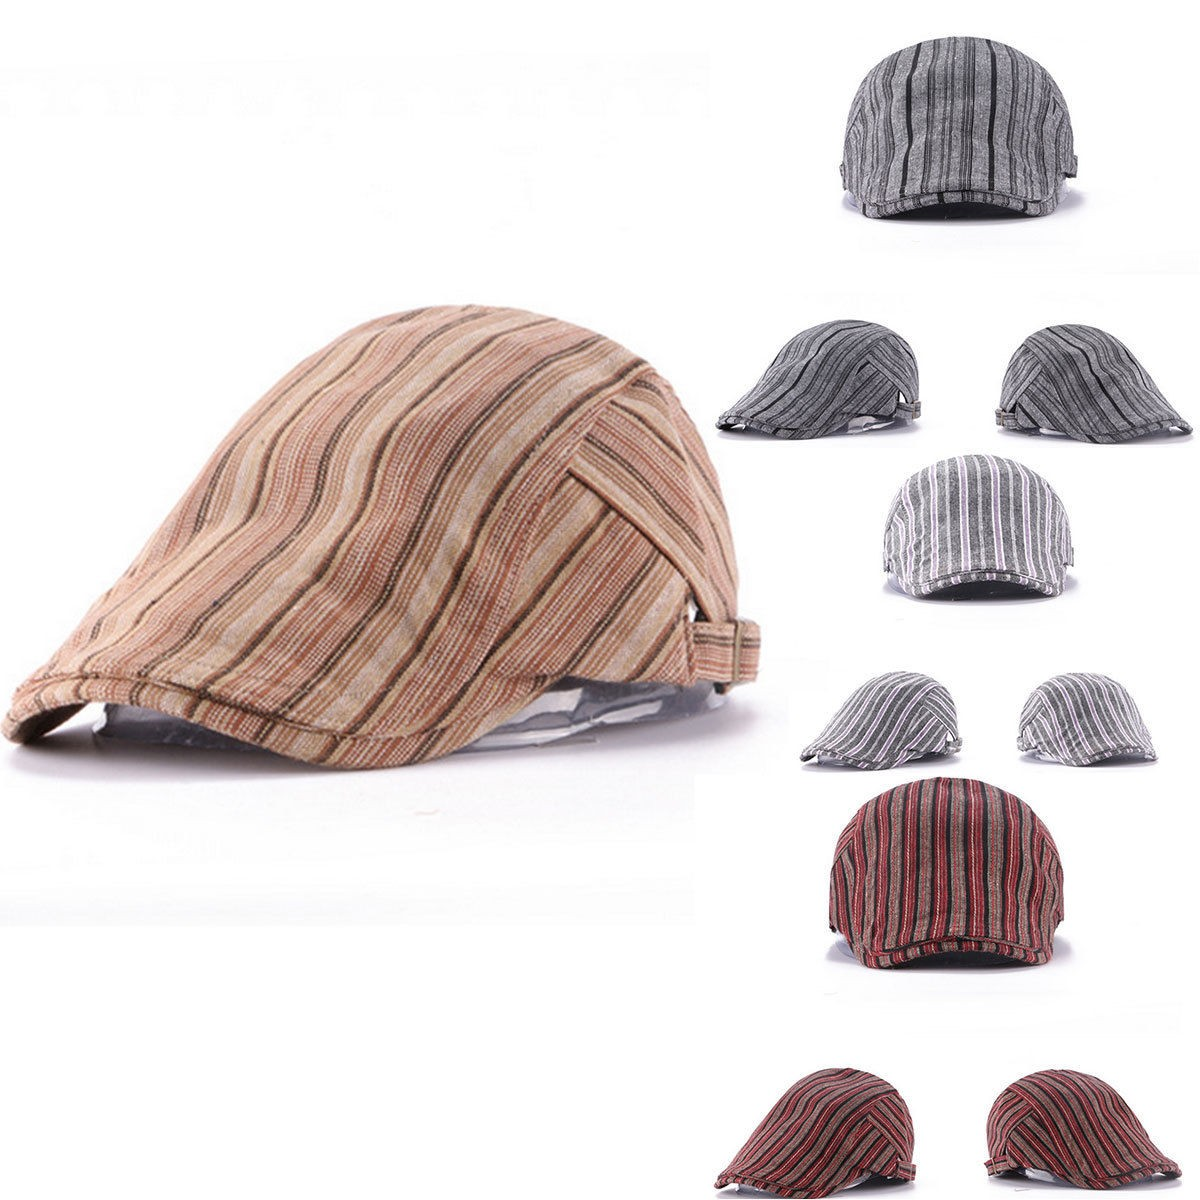 Unisex Men Women Stripe Cotton Blend Buckle Newsboy Beret Hat Duckbill Golf Cabbie Adjustable Cap unsiex men women cotton blend beret cabbie newsboy flat hat golf driving sun cap